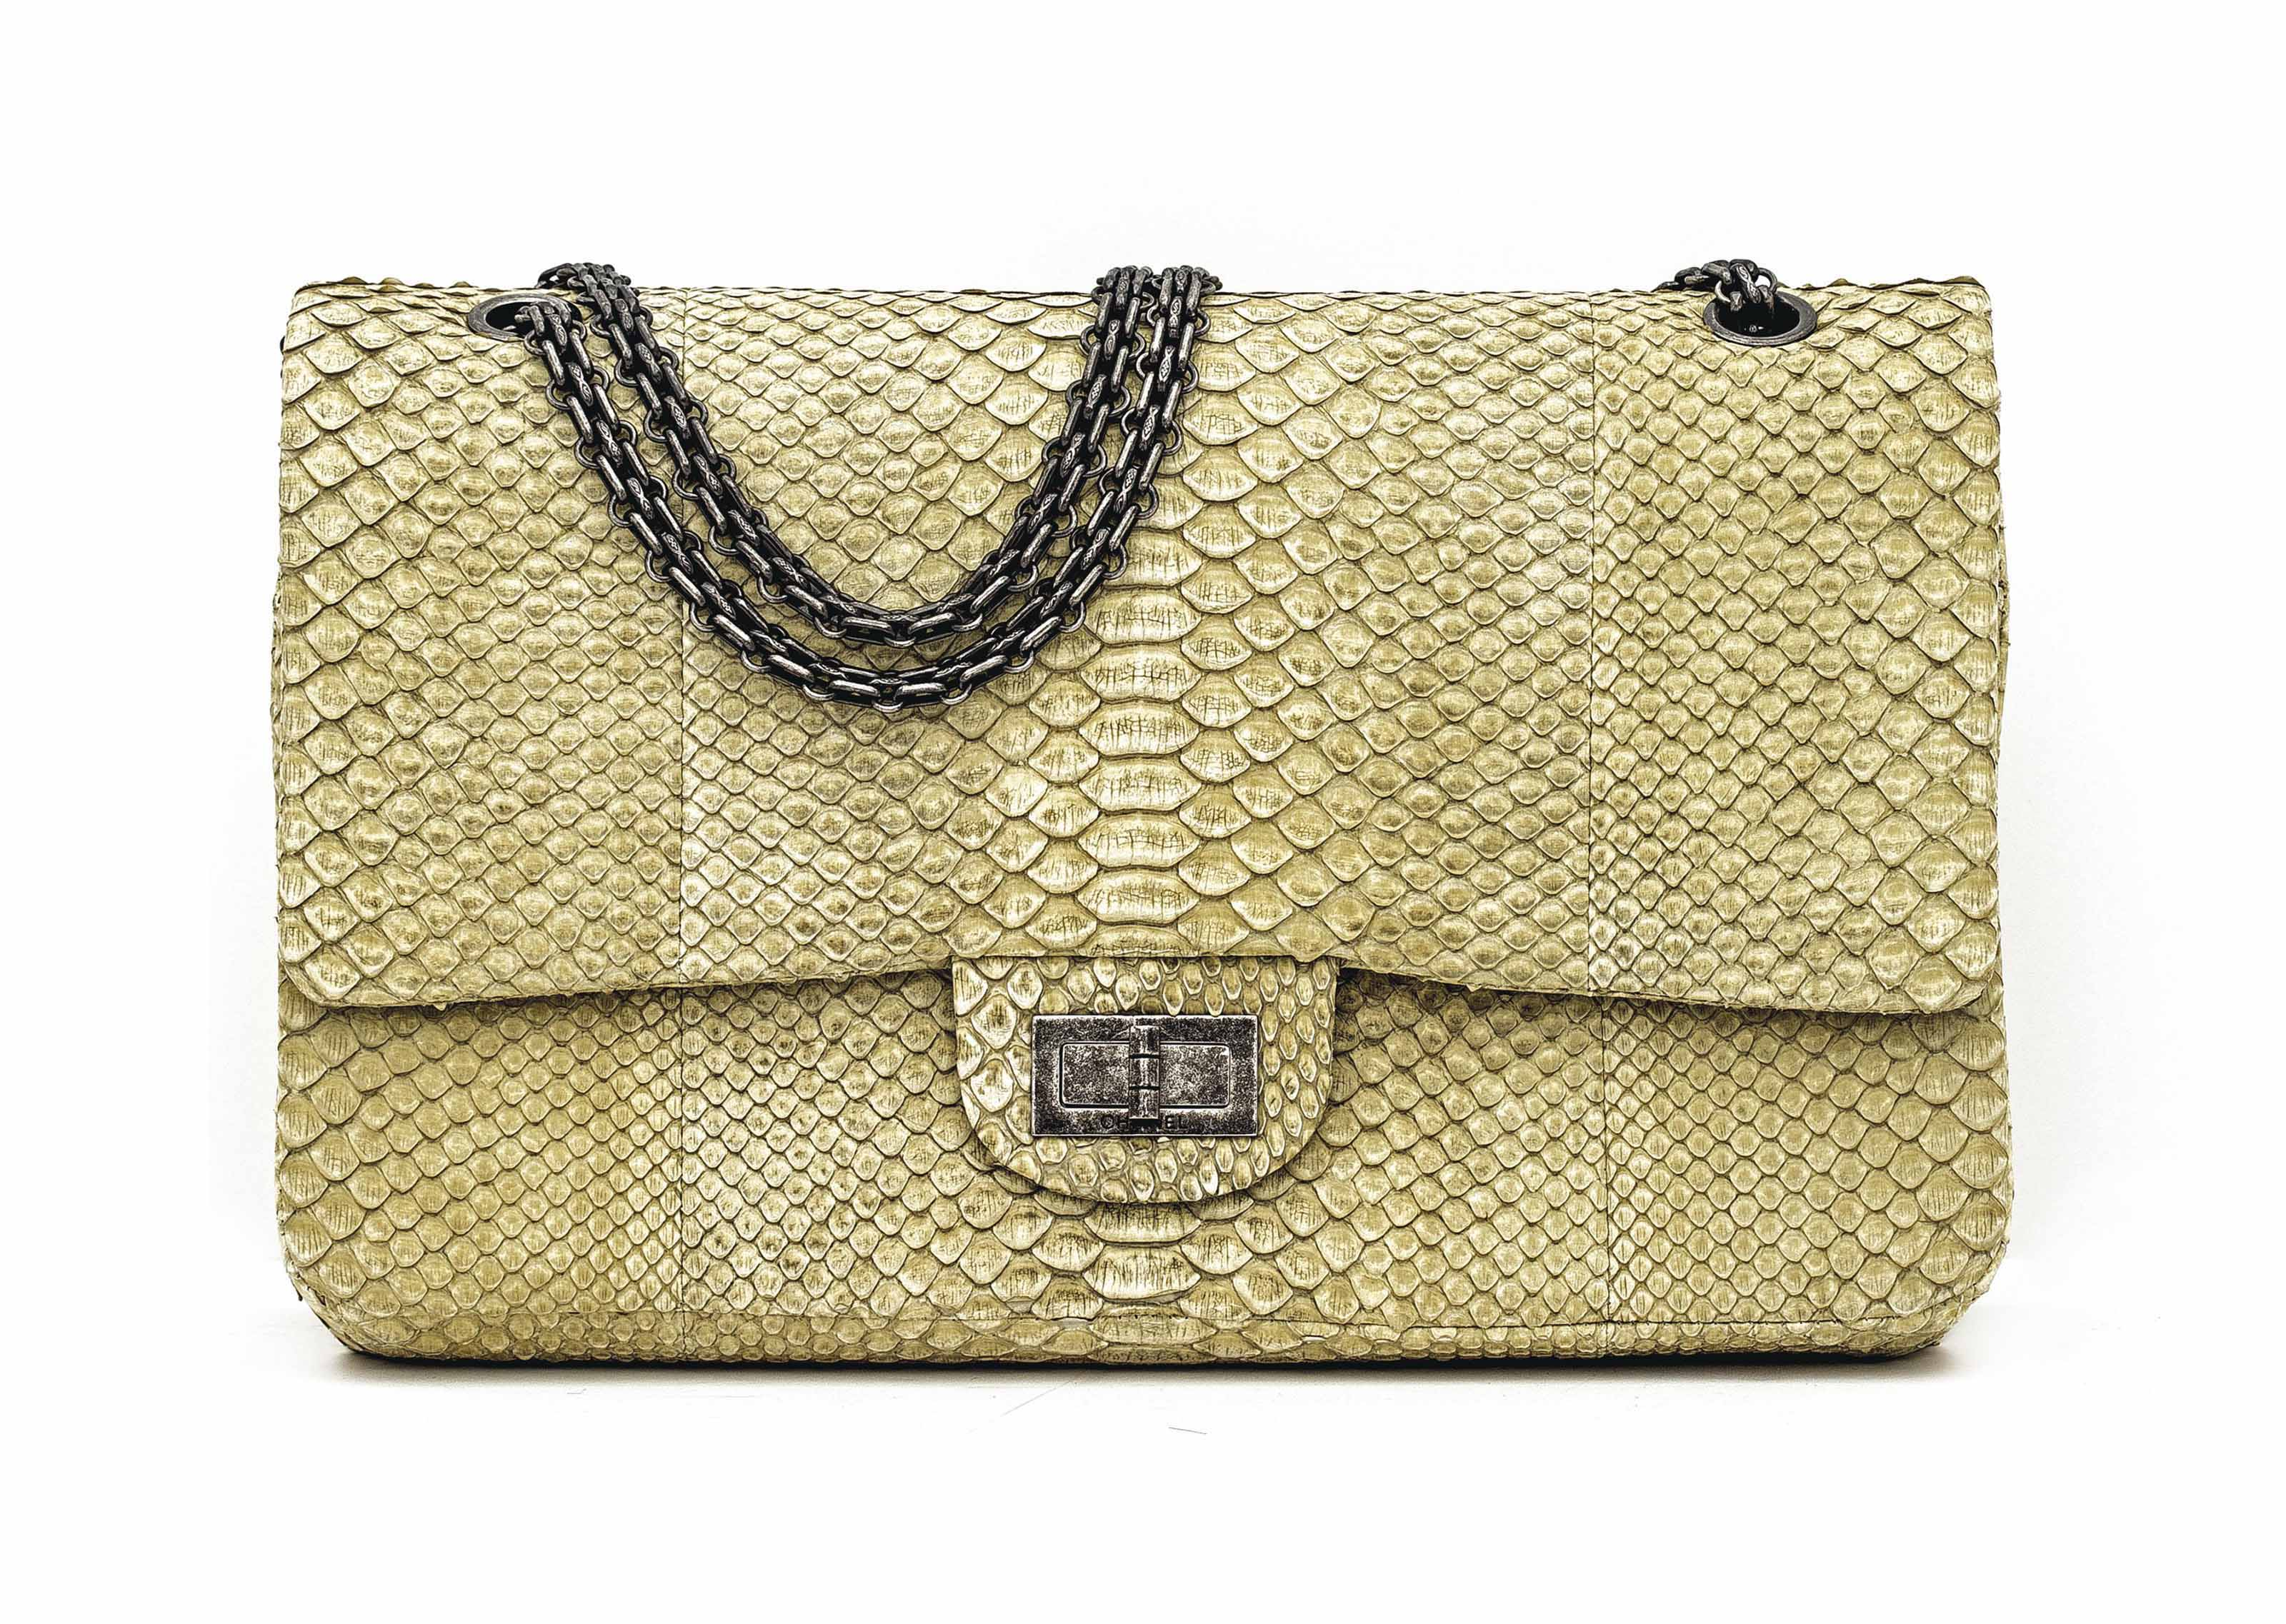 A PALE YELLOW PYTHON 2.55 DOUBLE FLAP BAG 227 WITH AGED SILVER HARDWARE